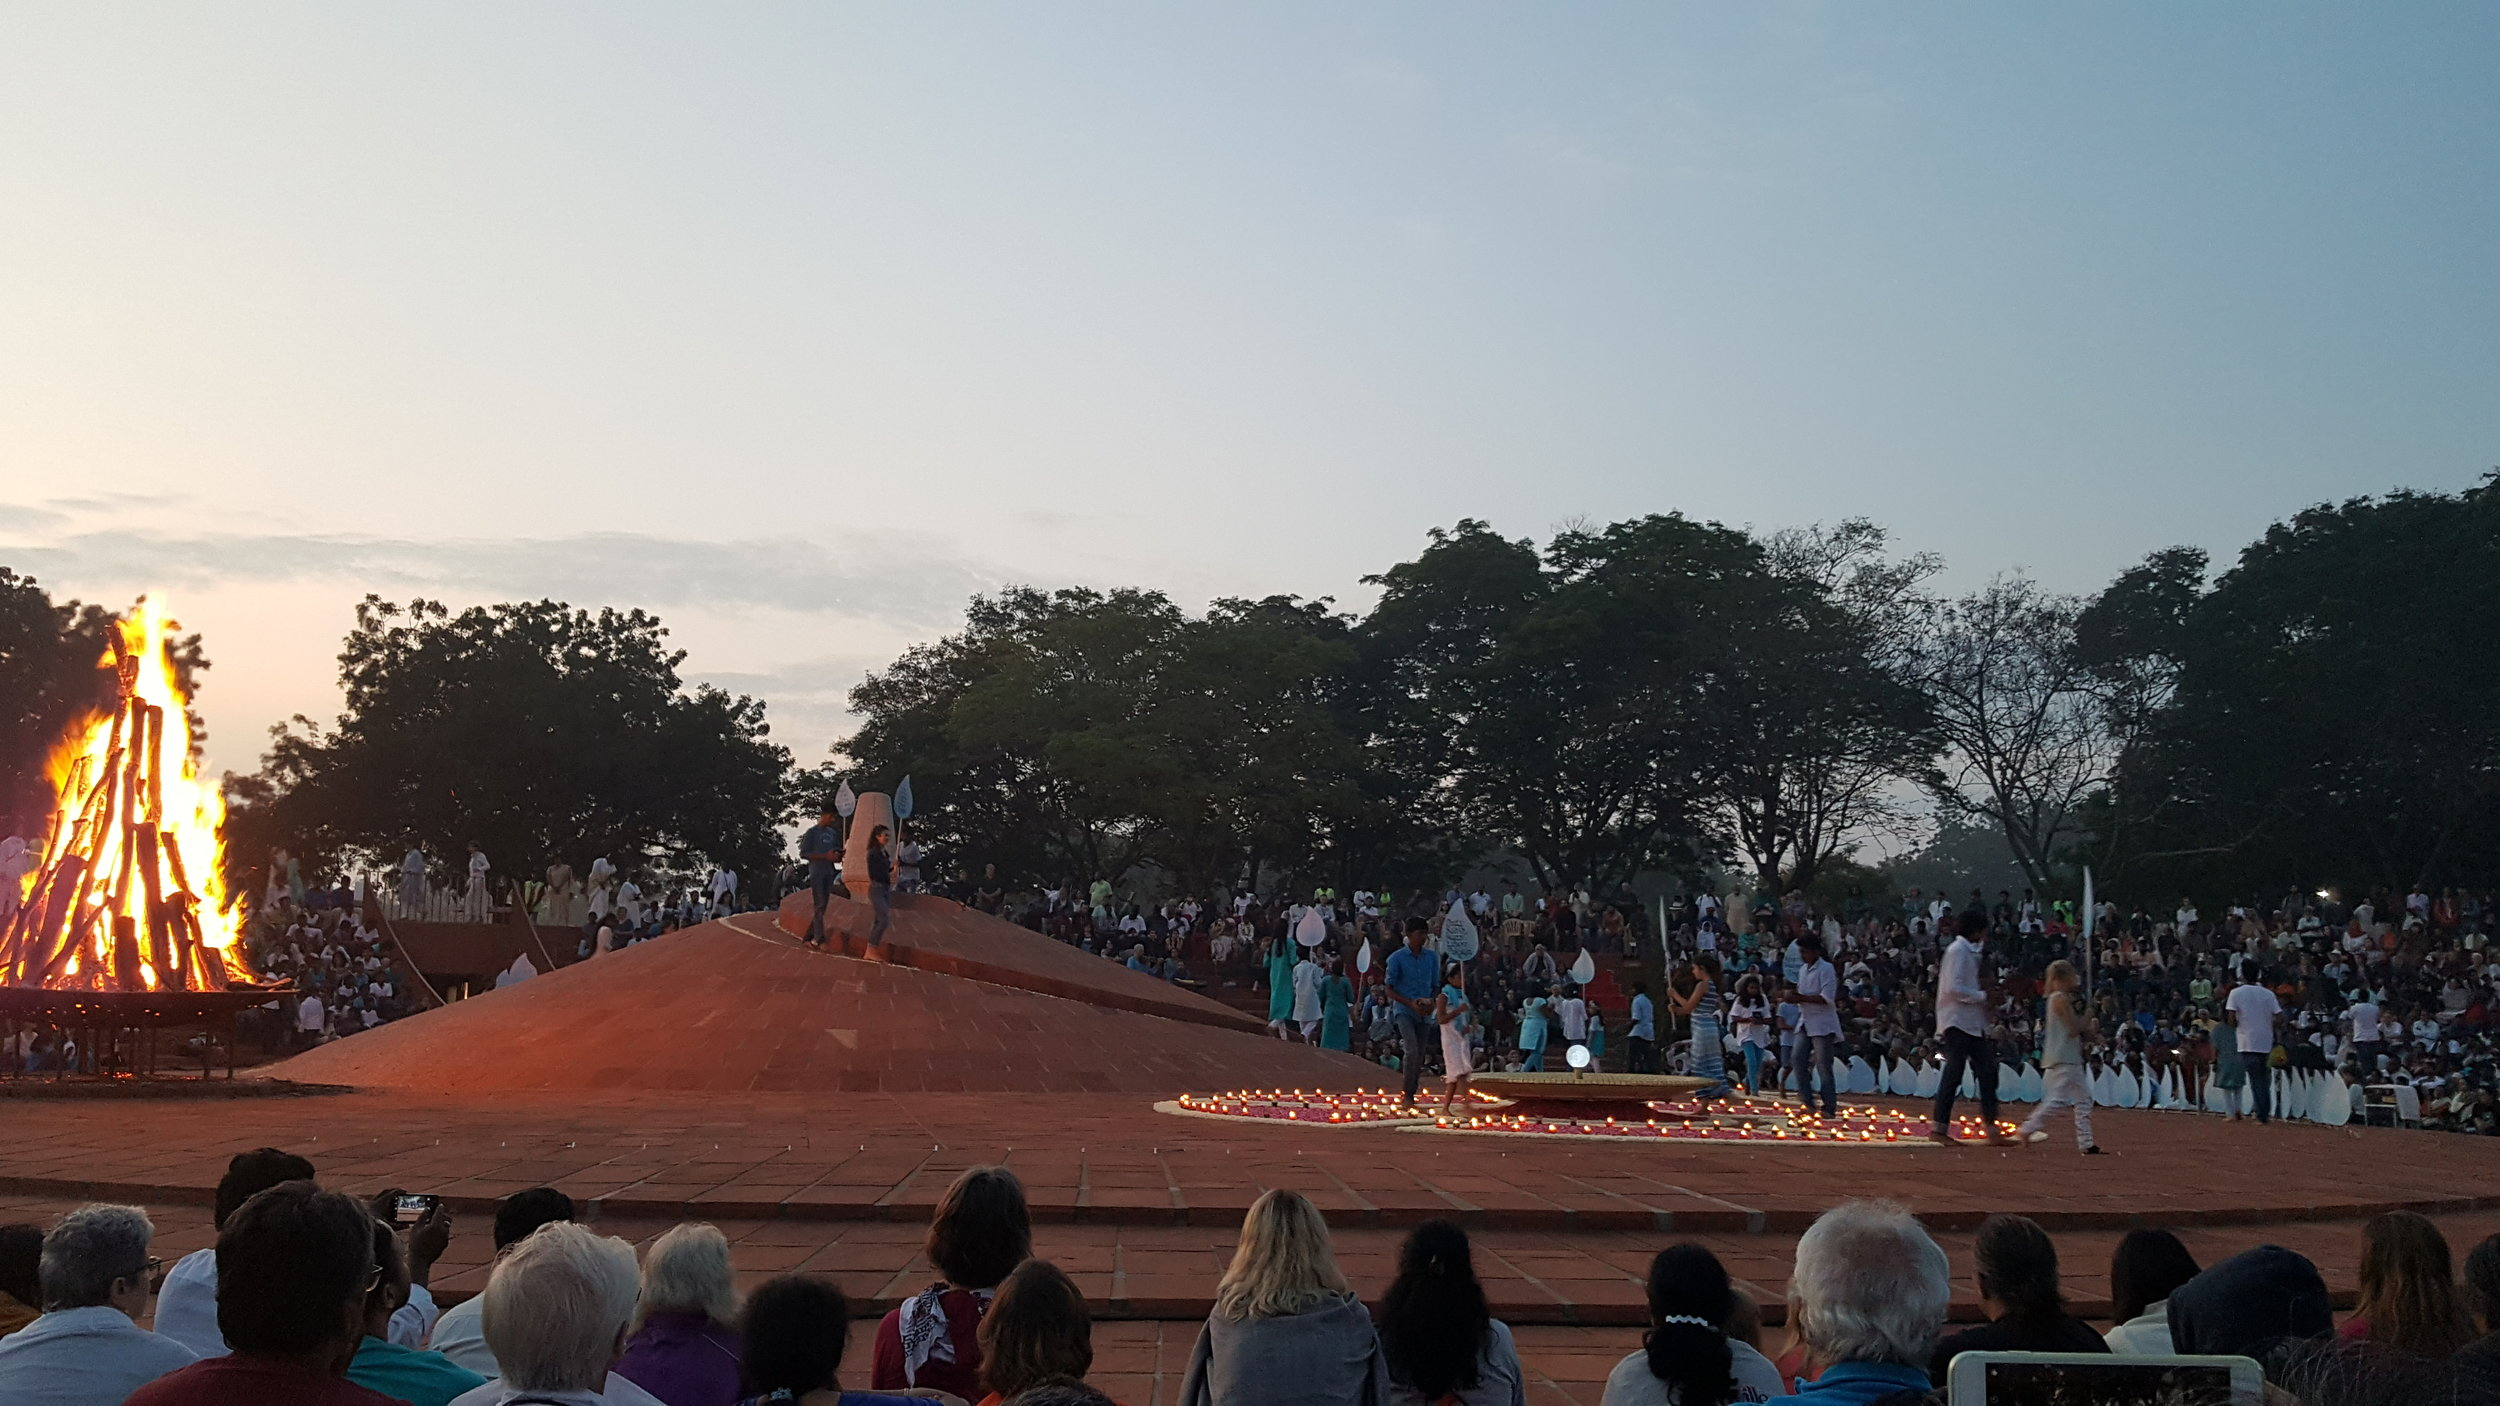 Water Ceremony in Auroville, India. Part of the 50th year anniversary.